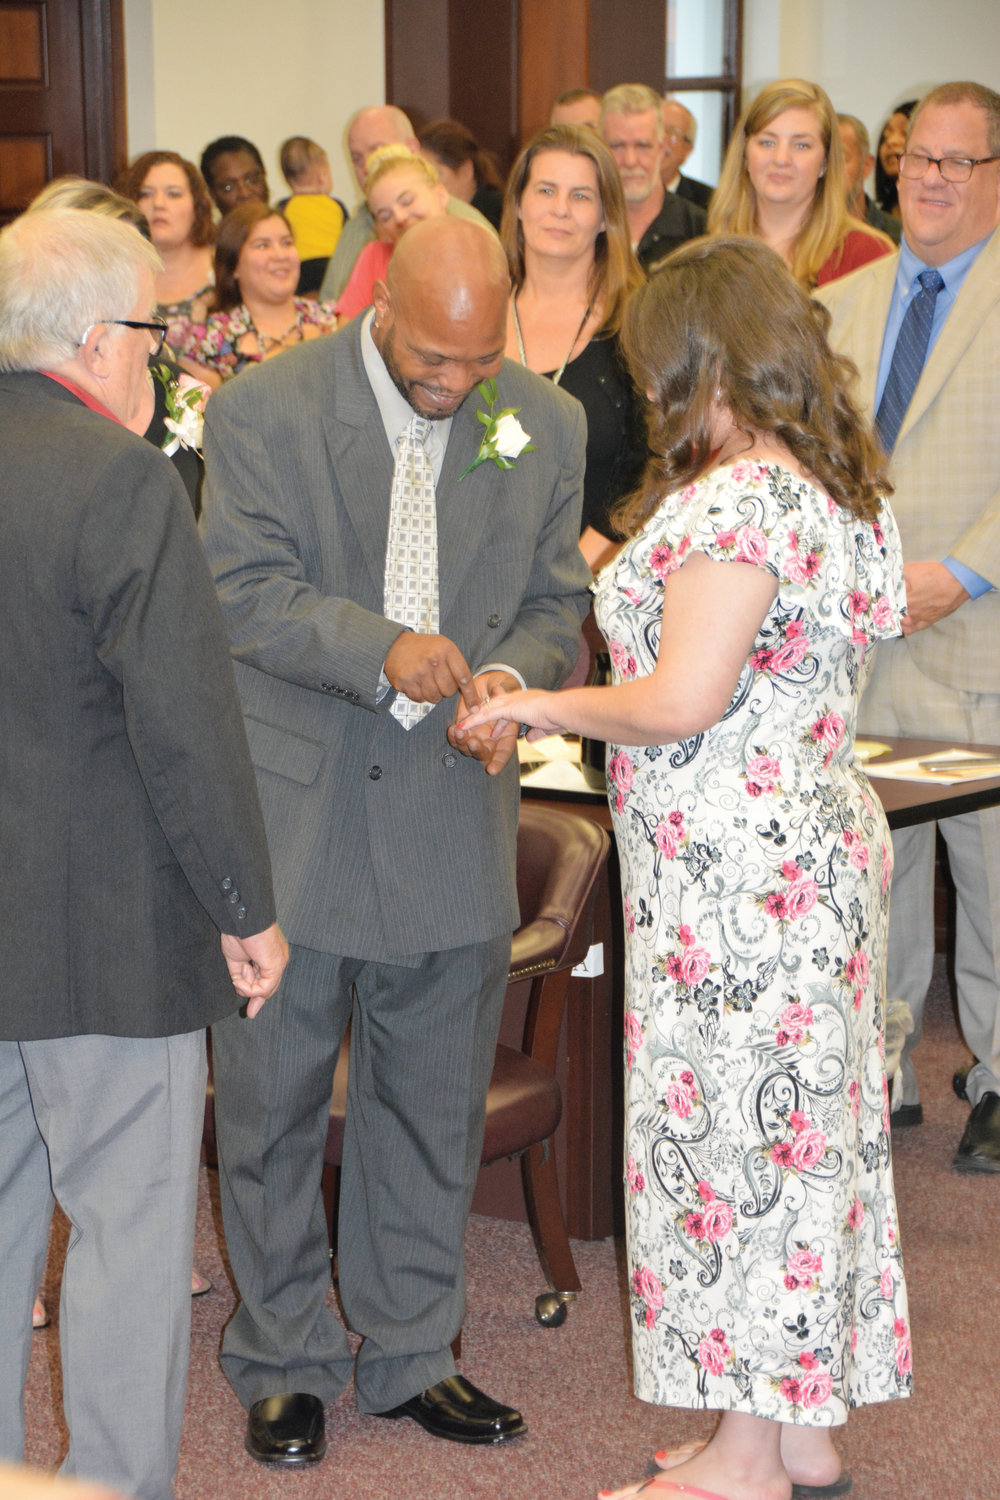 Veteran Hallitt Moore puts a wedding ring on the finger of his wife, Kristie, during the fifth anniversary celebration of the Harnett County Veterans Treatment Court which was held Wednesday. Magistrate Jerry Latta, left, presided at the ceremony.